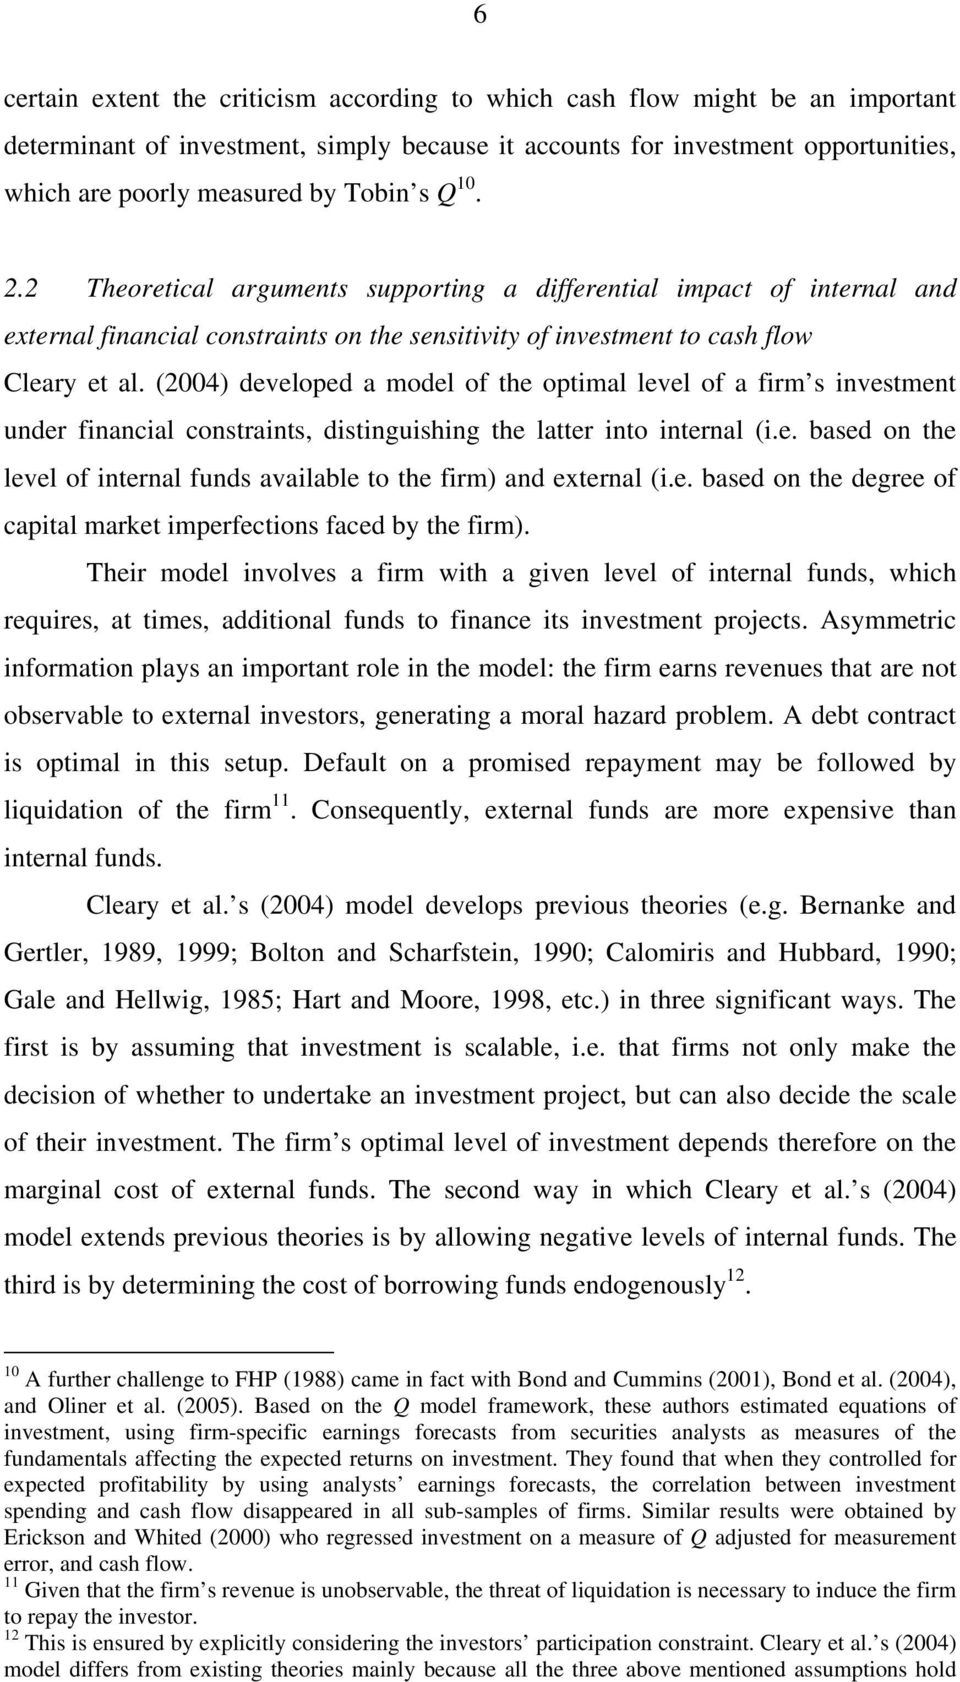 (2004) developed a model of the optimal level of a firm s investment under financial constraints, distinguishing the latter into internal (i.e. based on the level of internal funds available to the firm) and external (i.